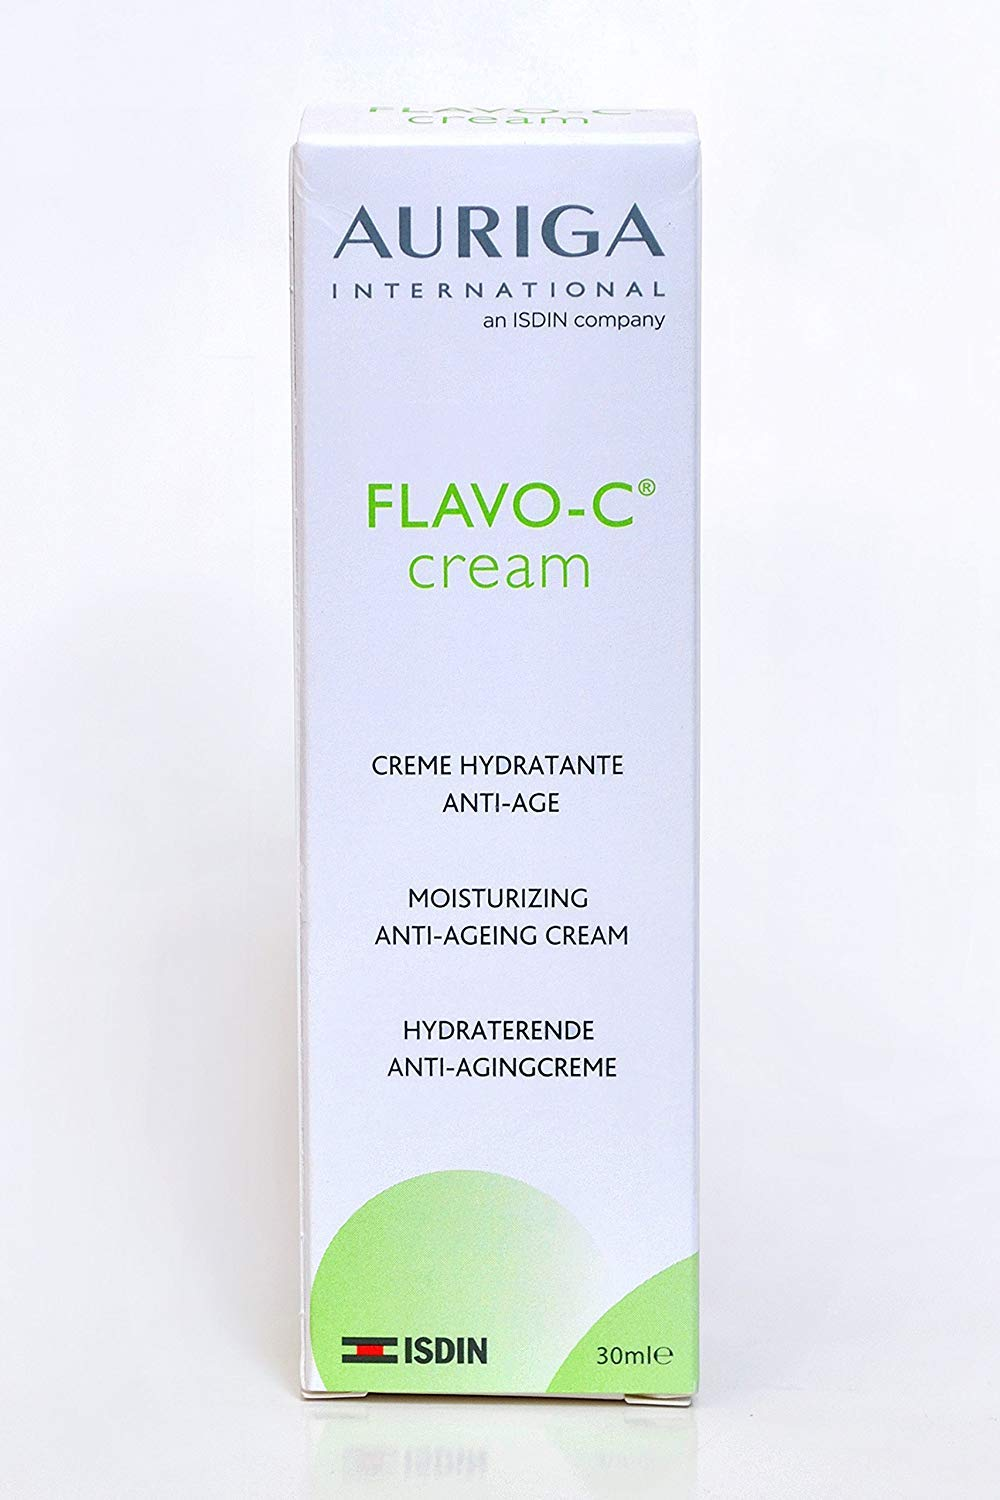 Vitamin C Hyaluronic Cream Flavo-C from Auriga